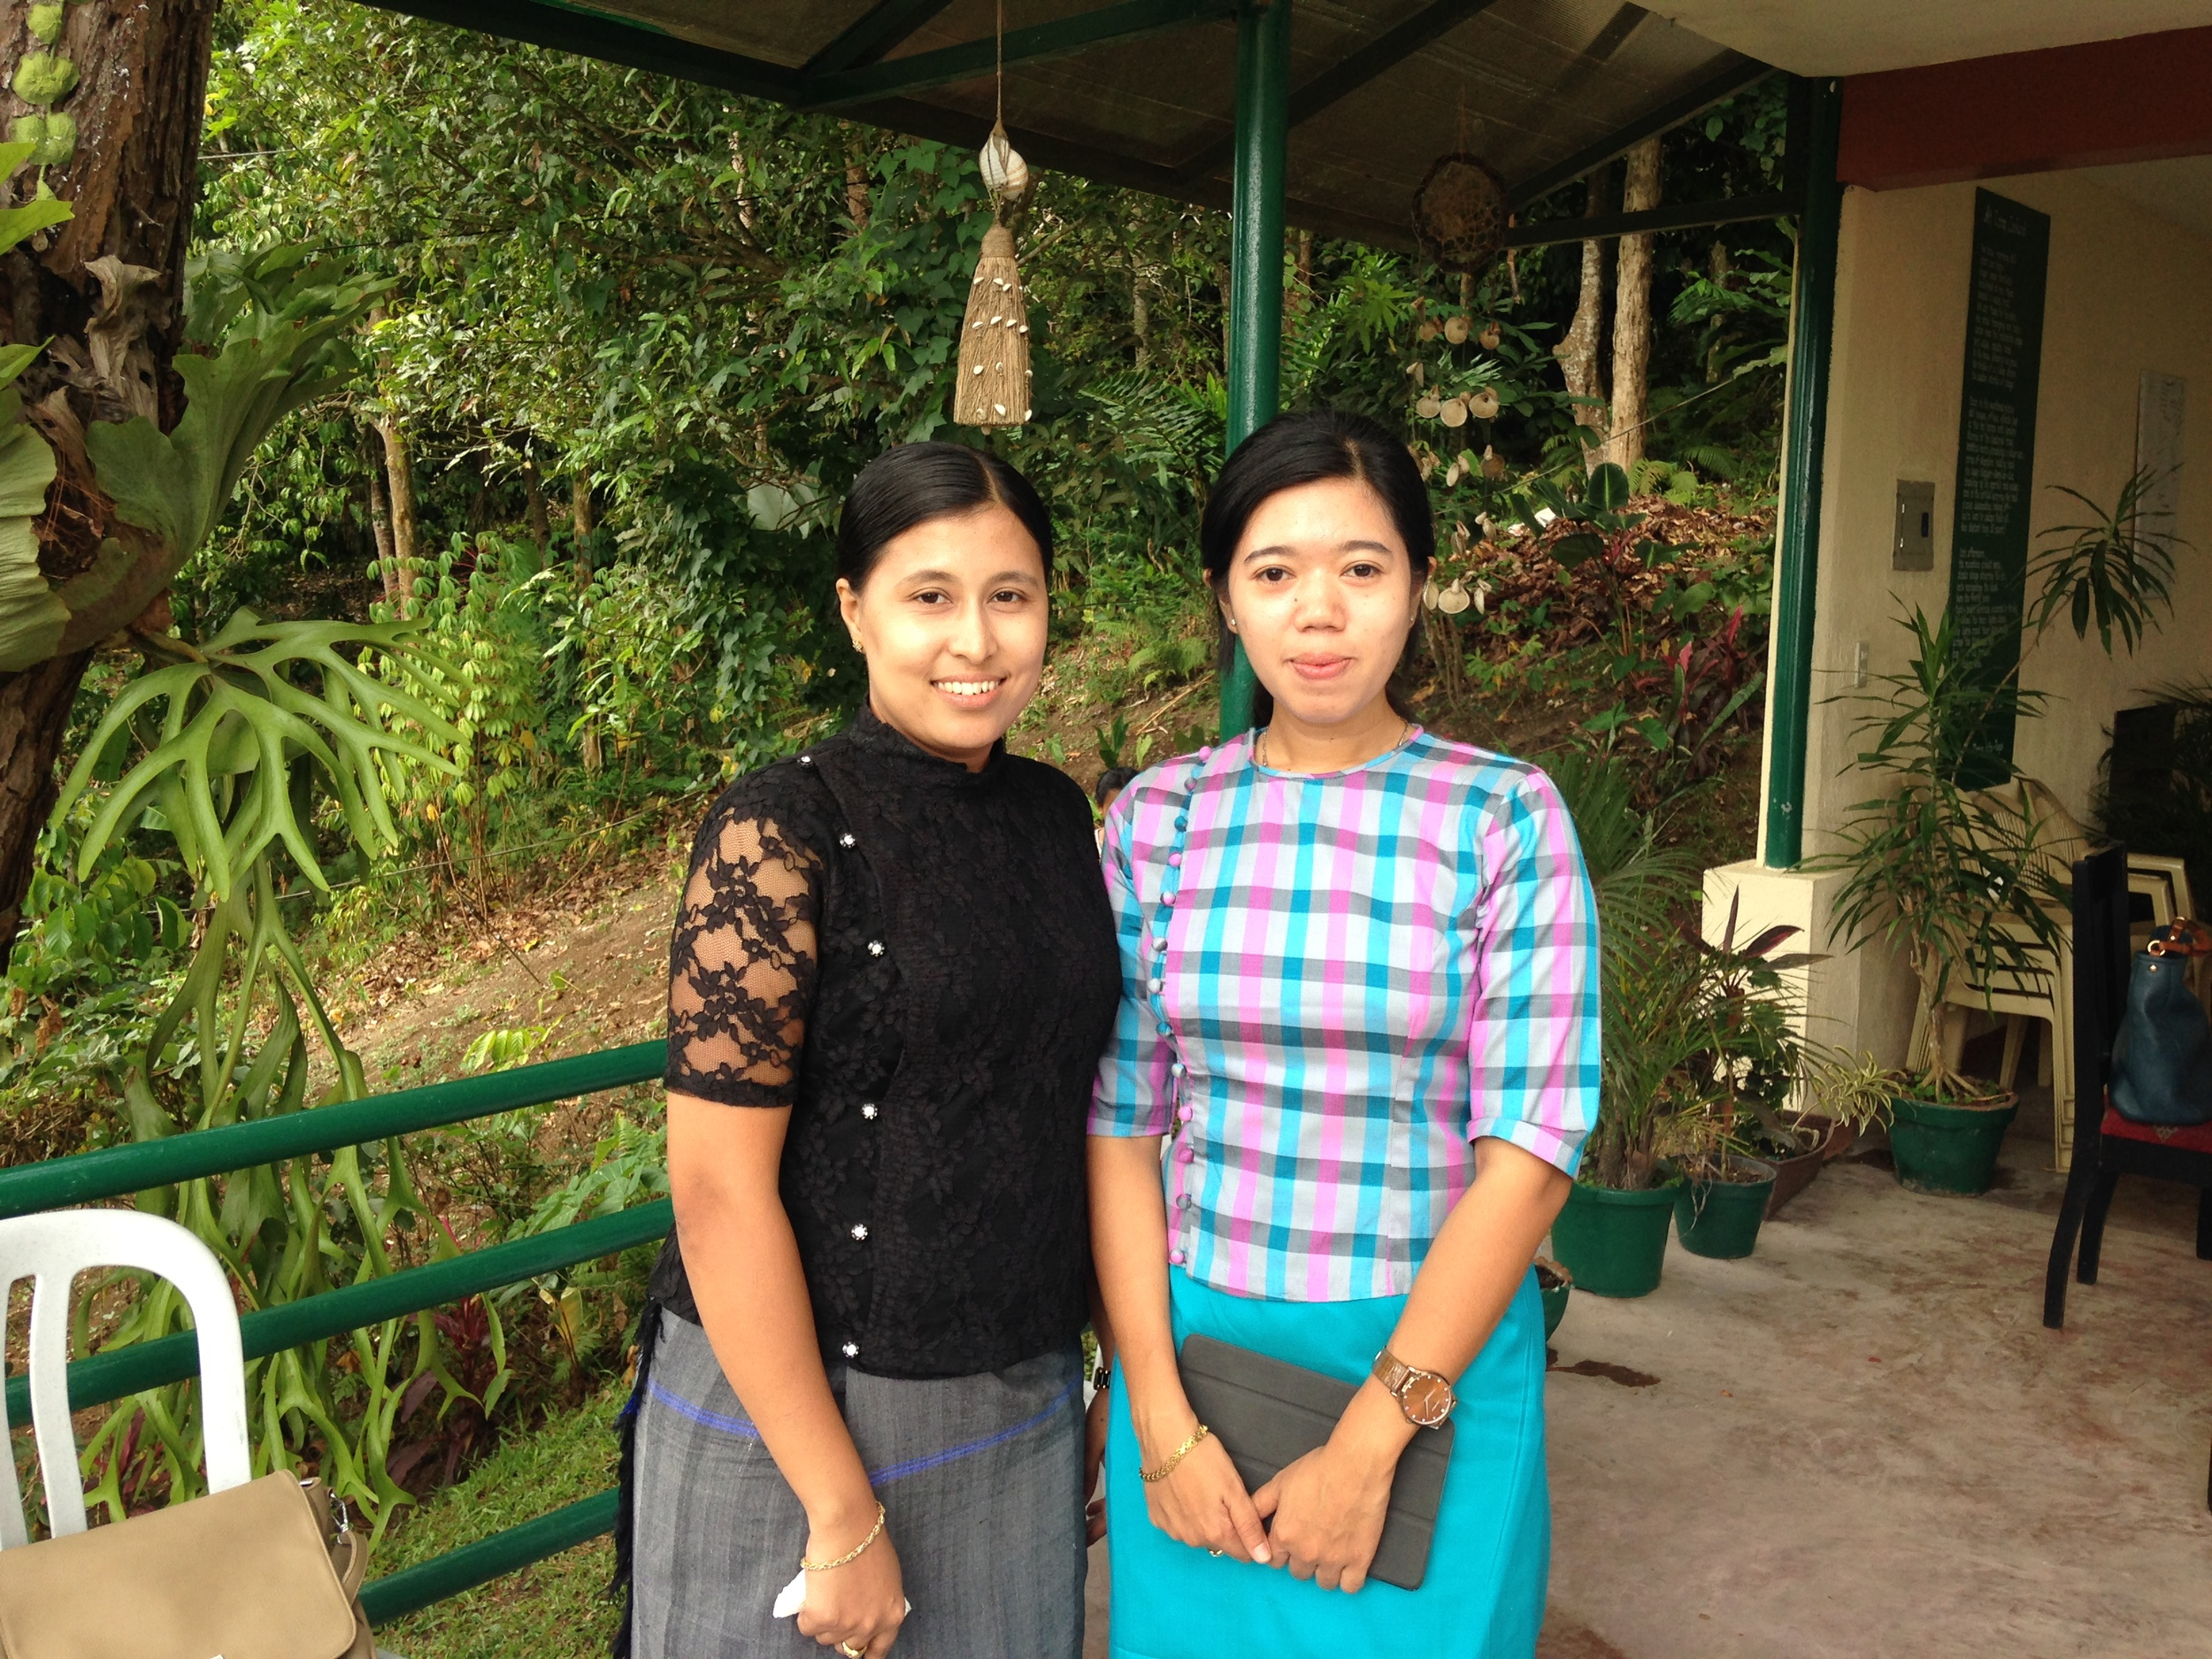 Observers from Myanmar, Daw Thazin Oo and Daw Thiri Soe of Dagon University, who are interested in starting a similar writers' workshop at their university.